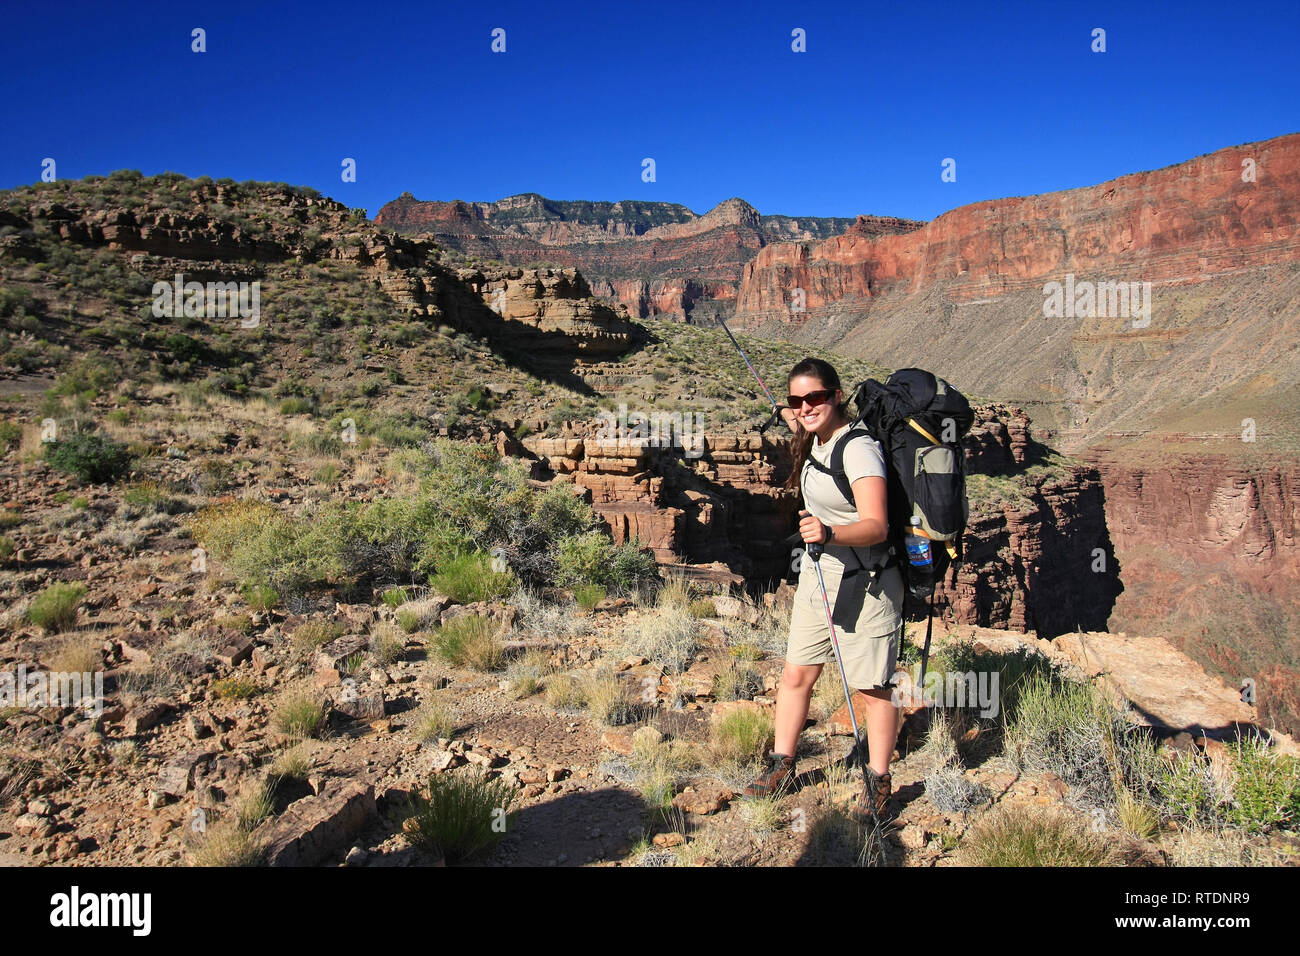 Young woman backpacker on the Tonto Trail pointing to trailhead where her hike started on the Grandview Trail in Grand Canyon National Park, Arizona. - Stock Image